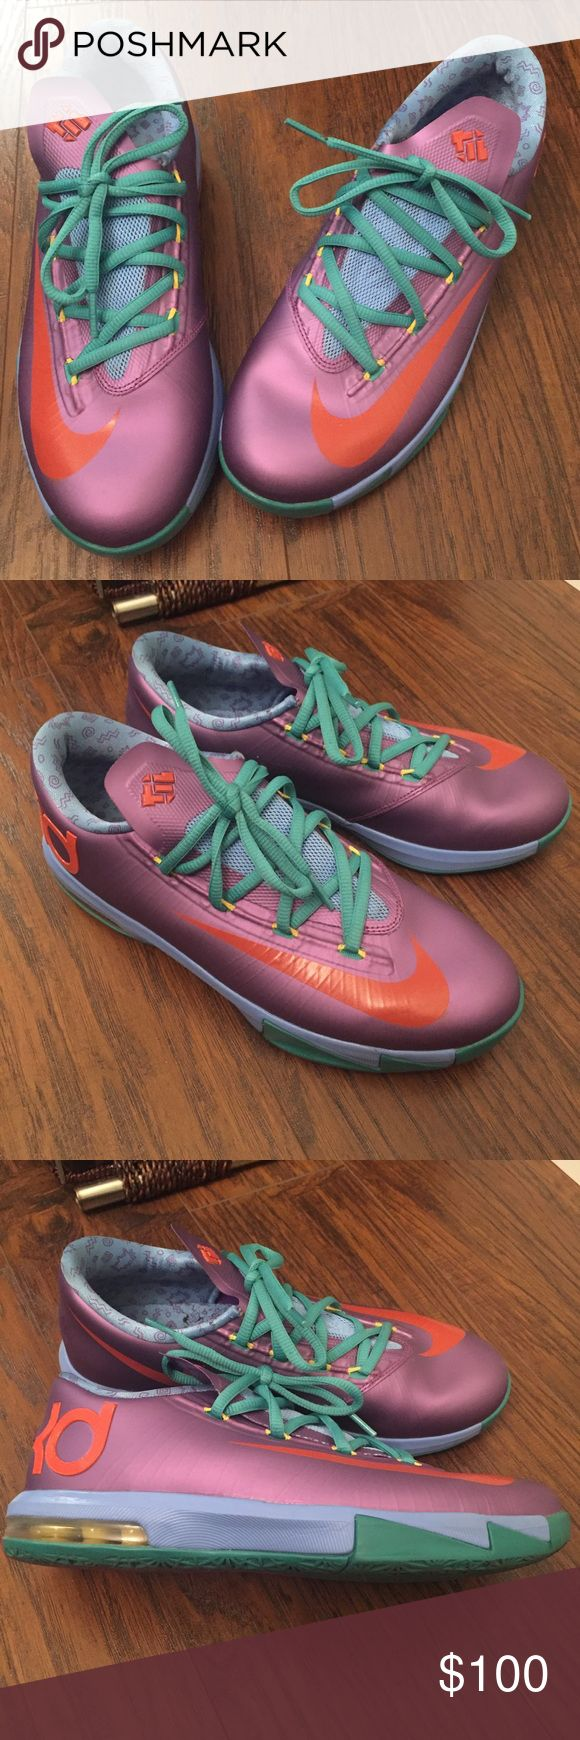 Nike KD VI Rugrats 5.5 Y Nike KD VI features a Laser Purple upper with Team Orange accents and Sport Turquoise detailing with a Rugrats-inspired graphic on the inner lining. These are in next to new condition, with no major signs of wear. Box not available Nike Shoes Sneakers